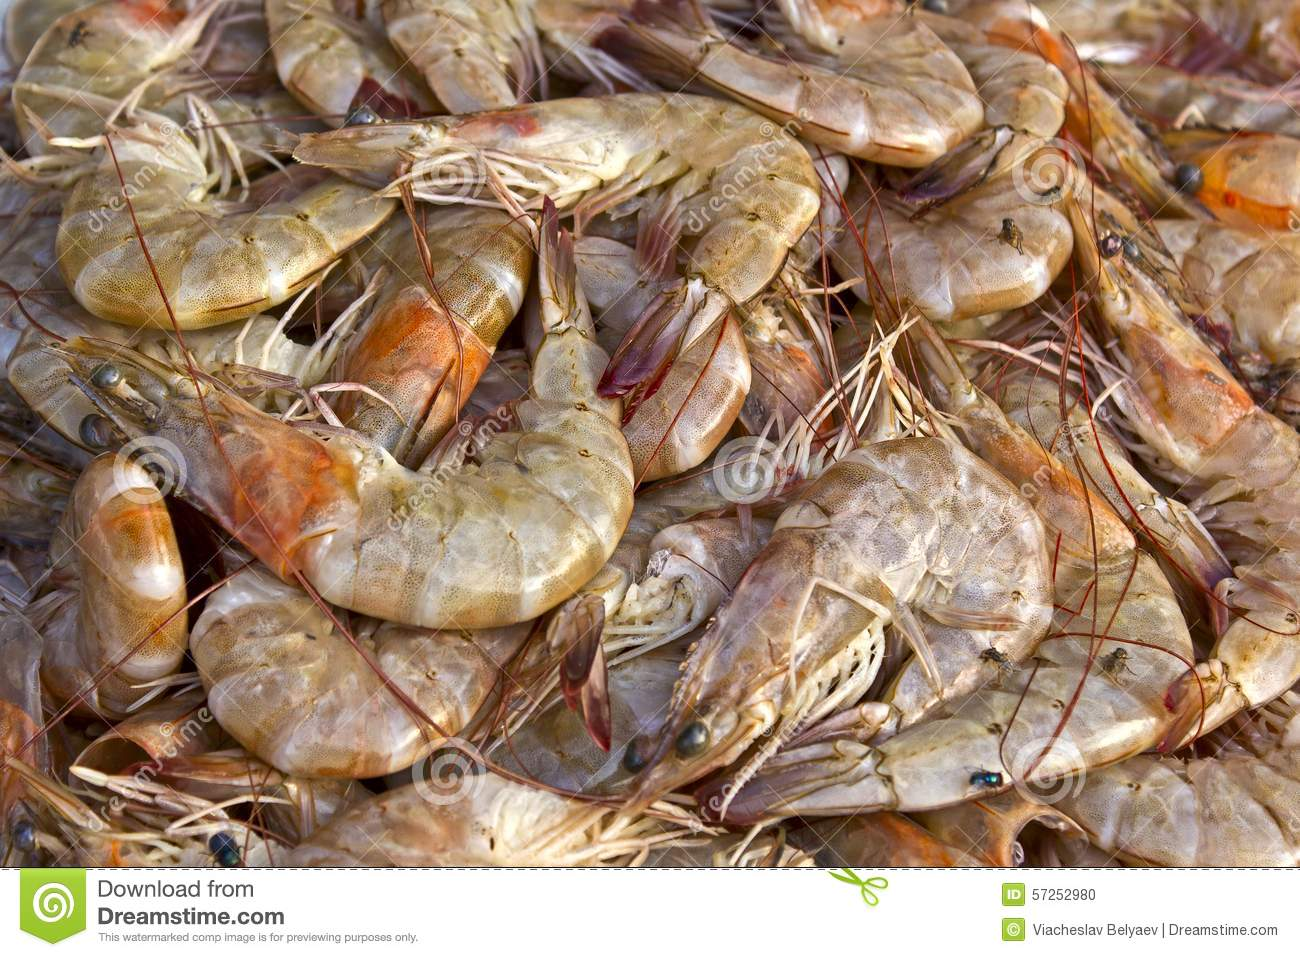 Raw shrimps for sale on the market in Tirupati, India.